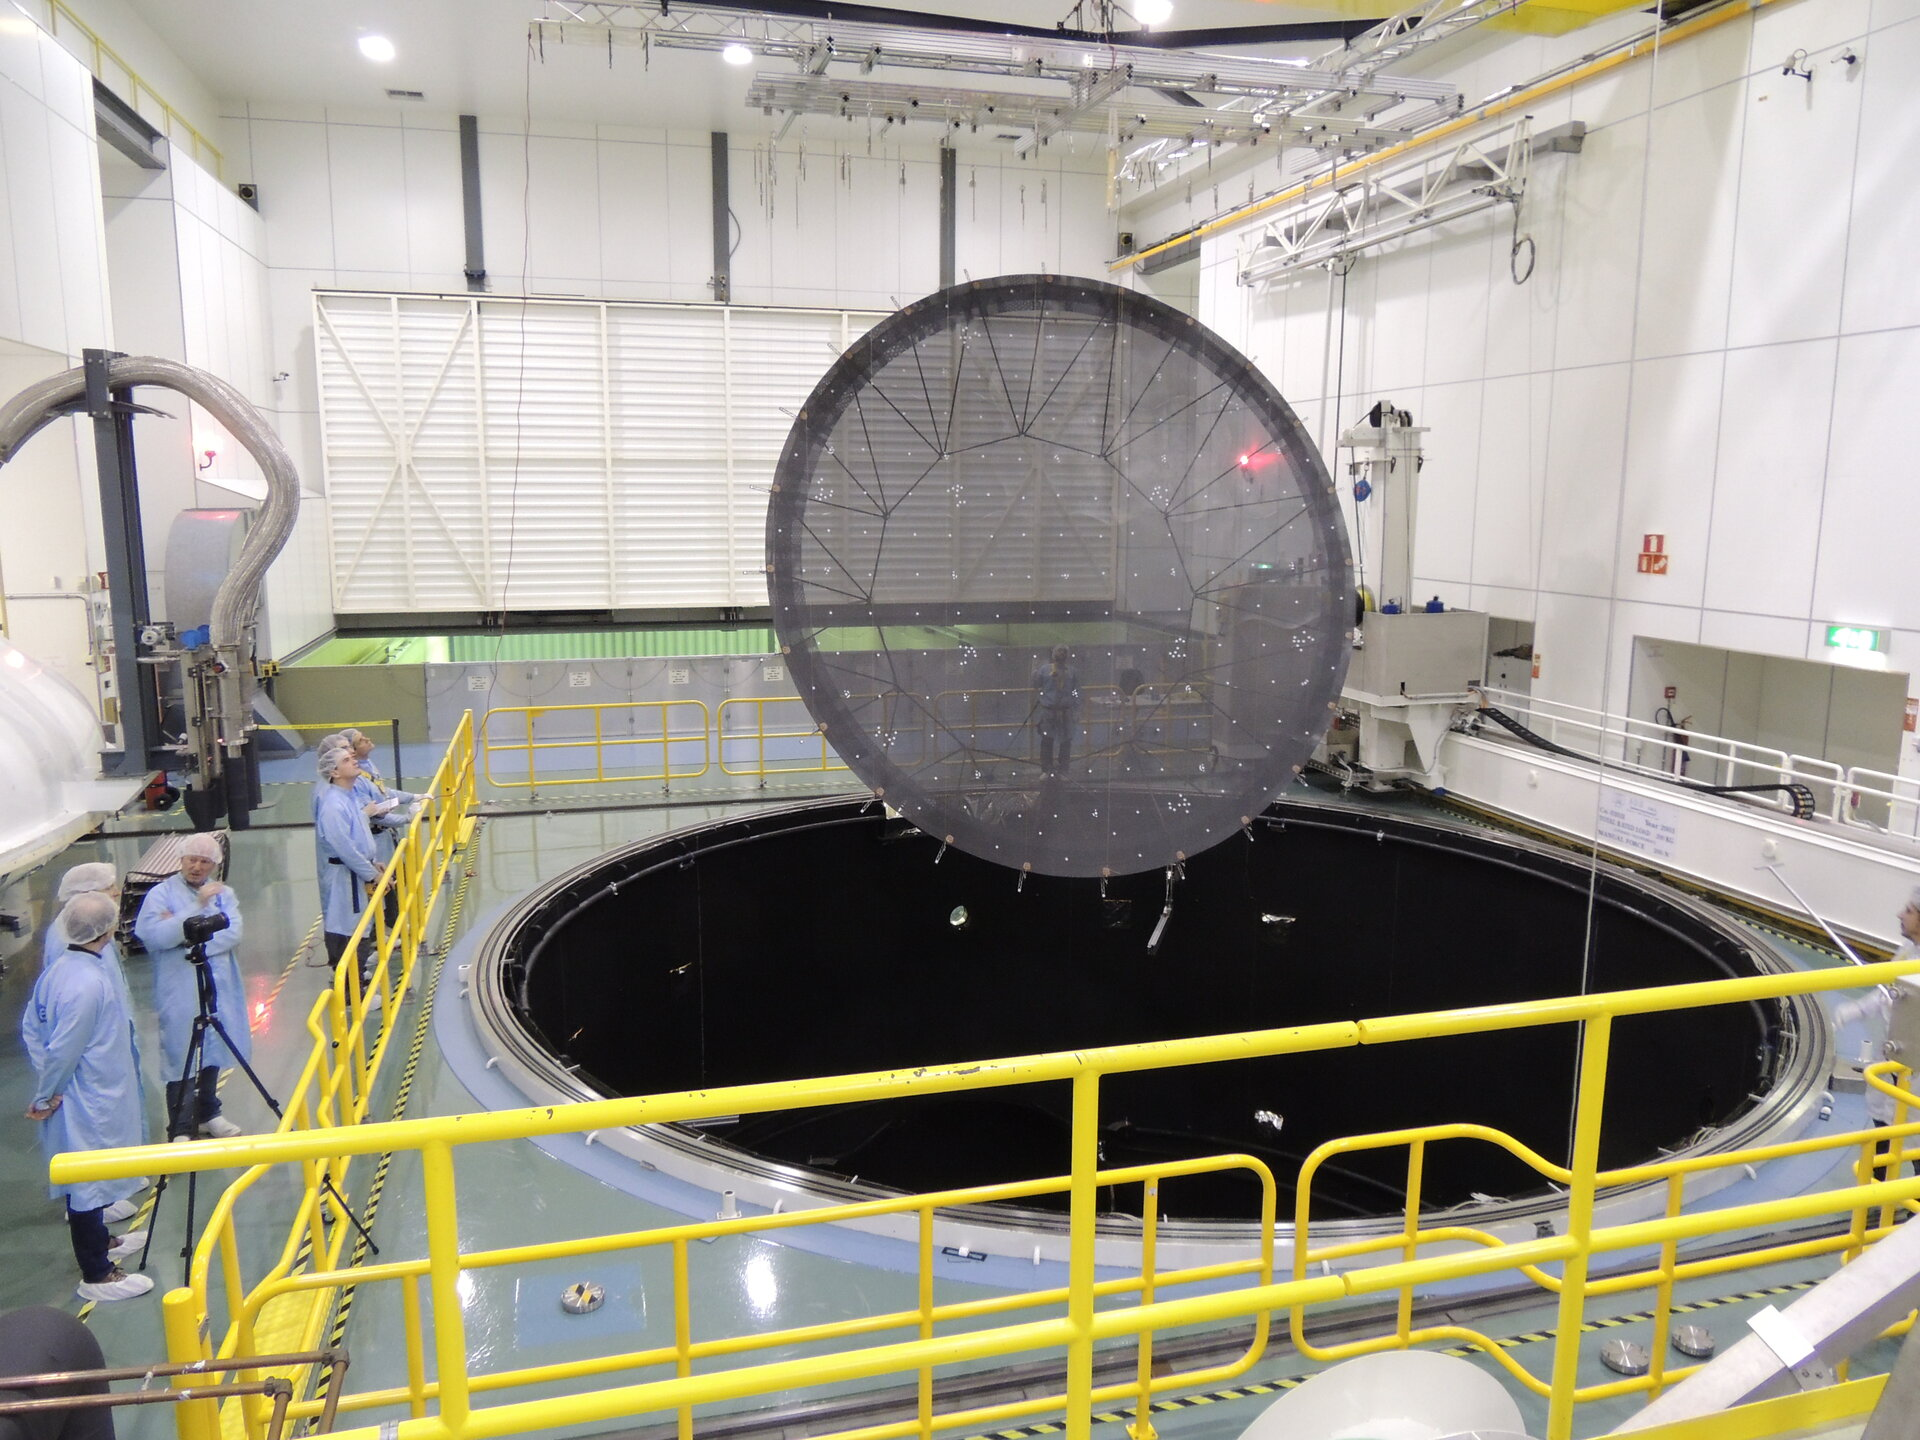 LABUM reflector lowered into LSS